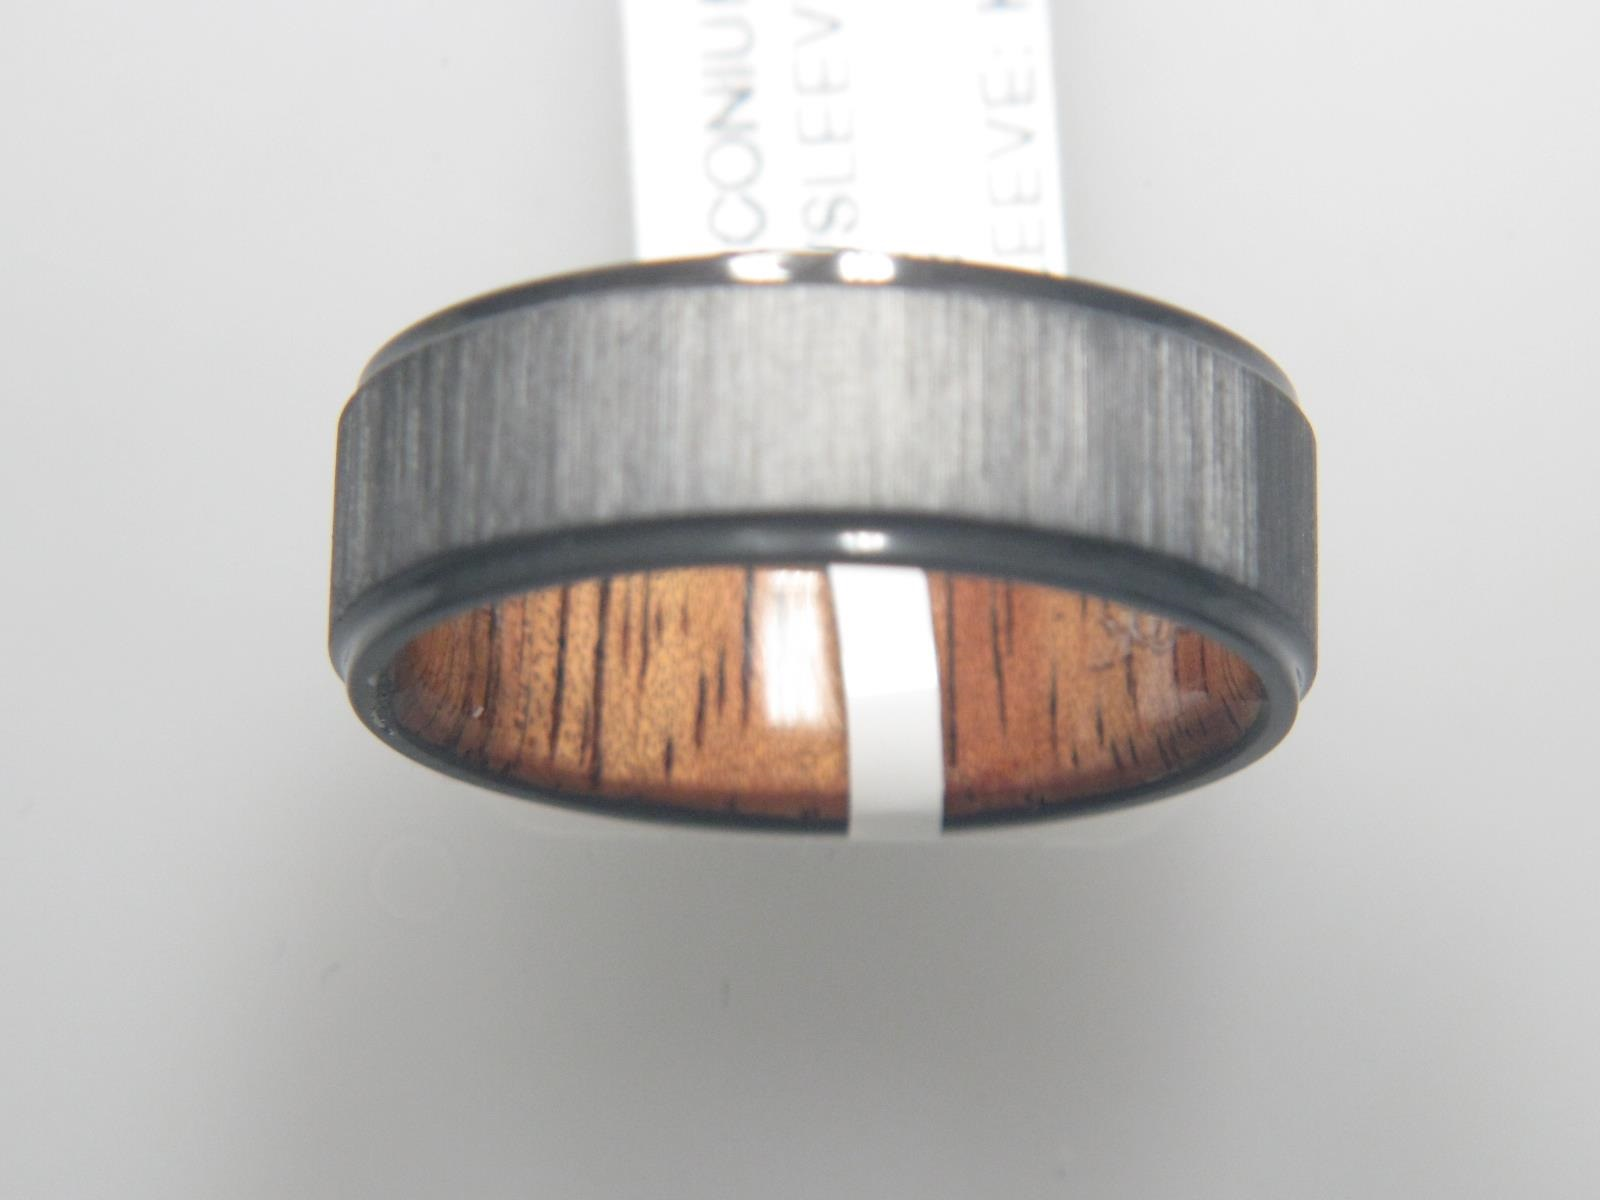 Ceramic, Zirconium Wedding Bands by Lashbrook Designs